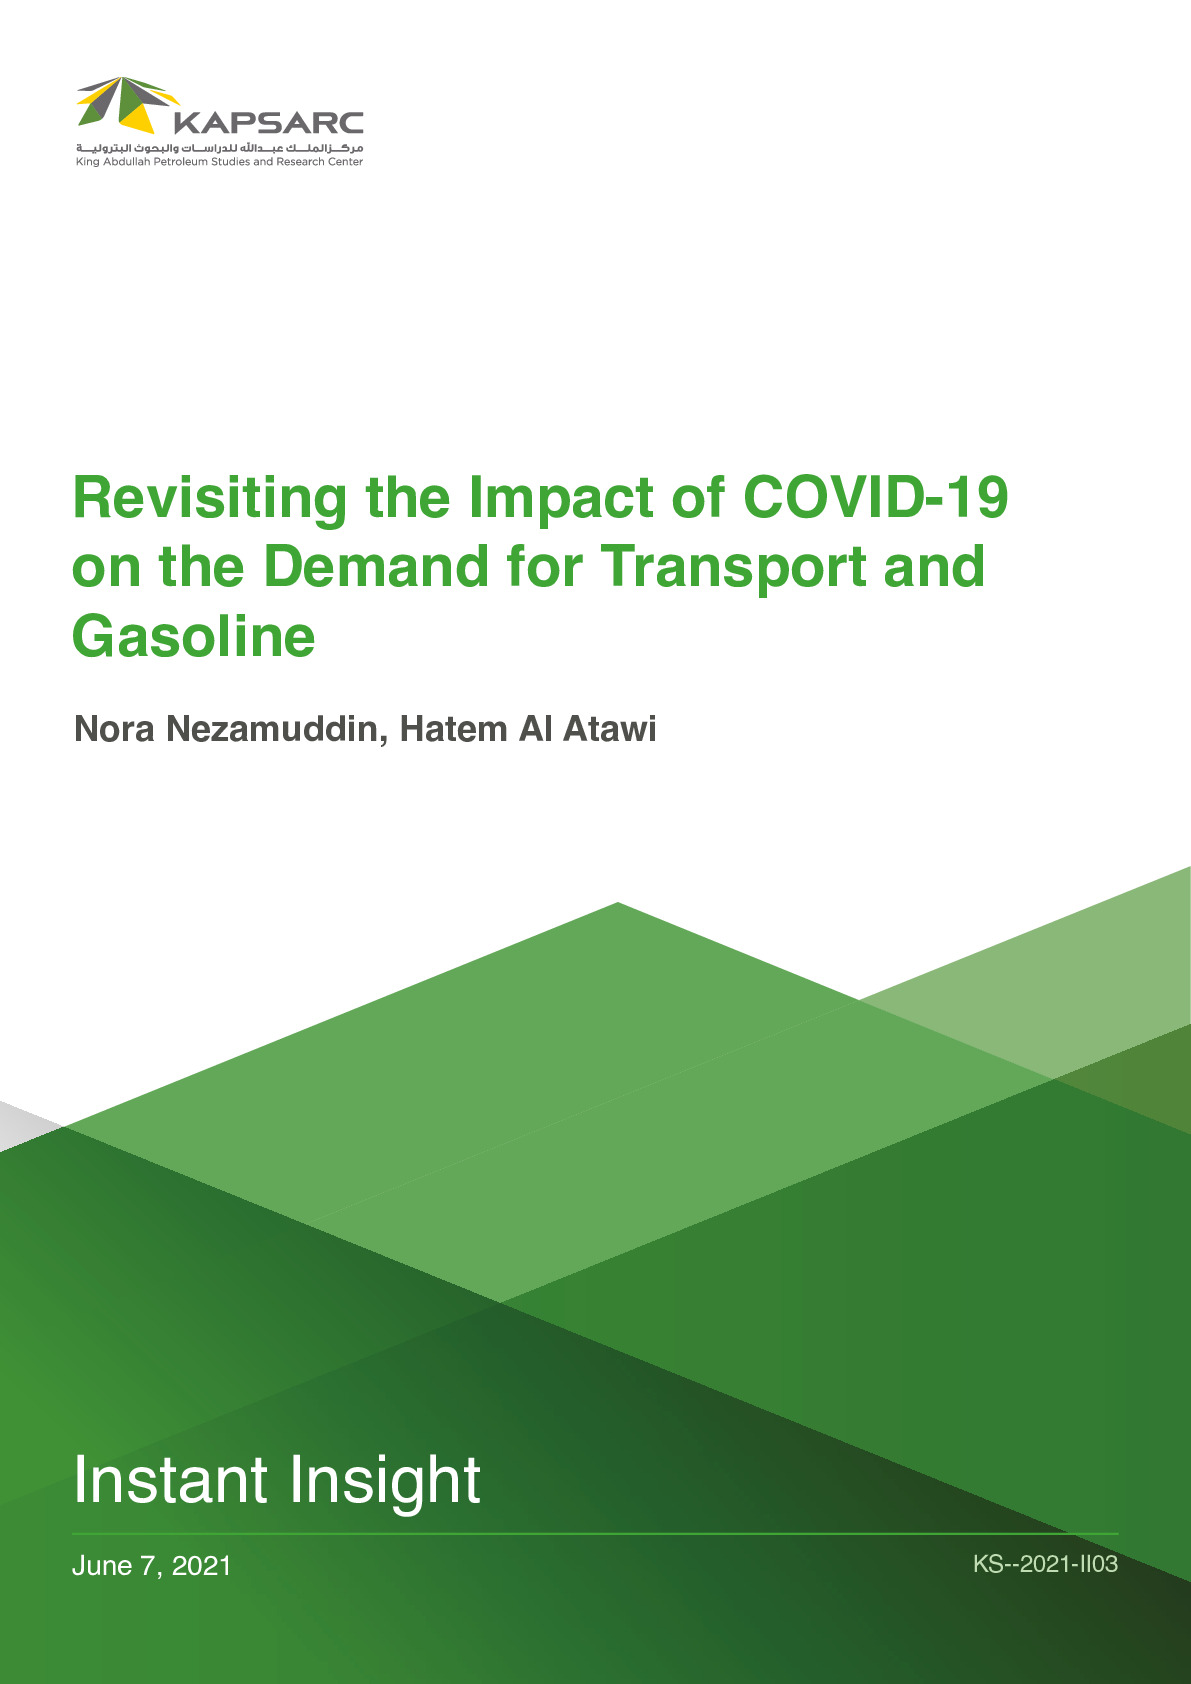 Revisiting the Impact of COVID-19 on the Demand for Transport and Gasoline